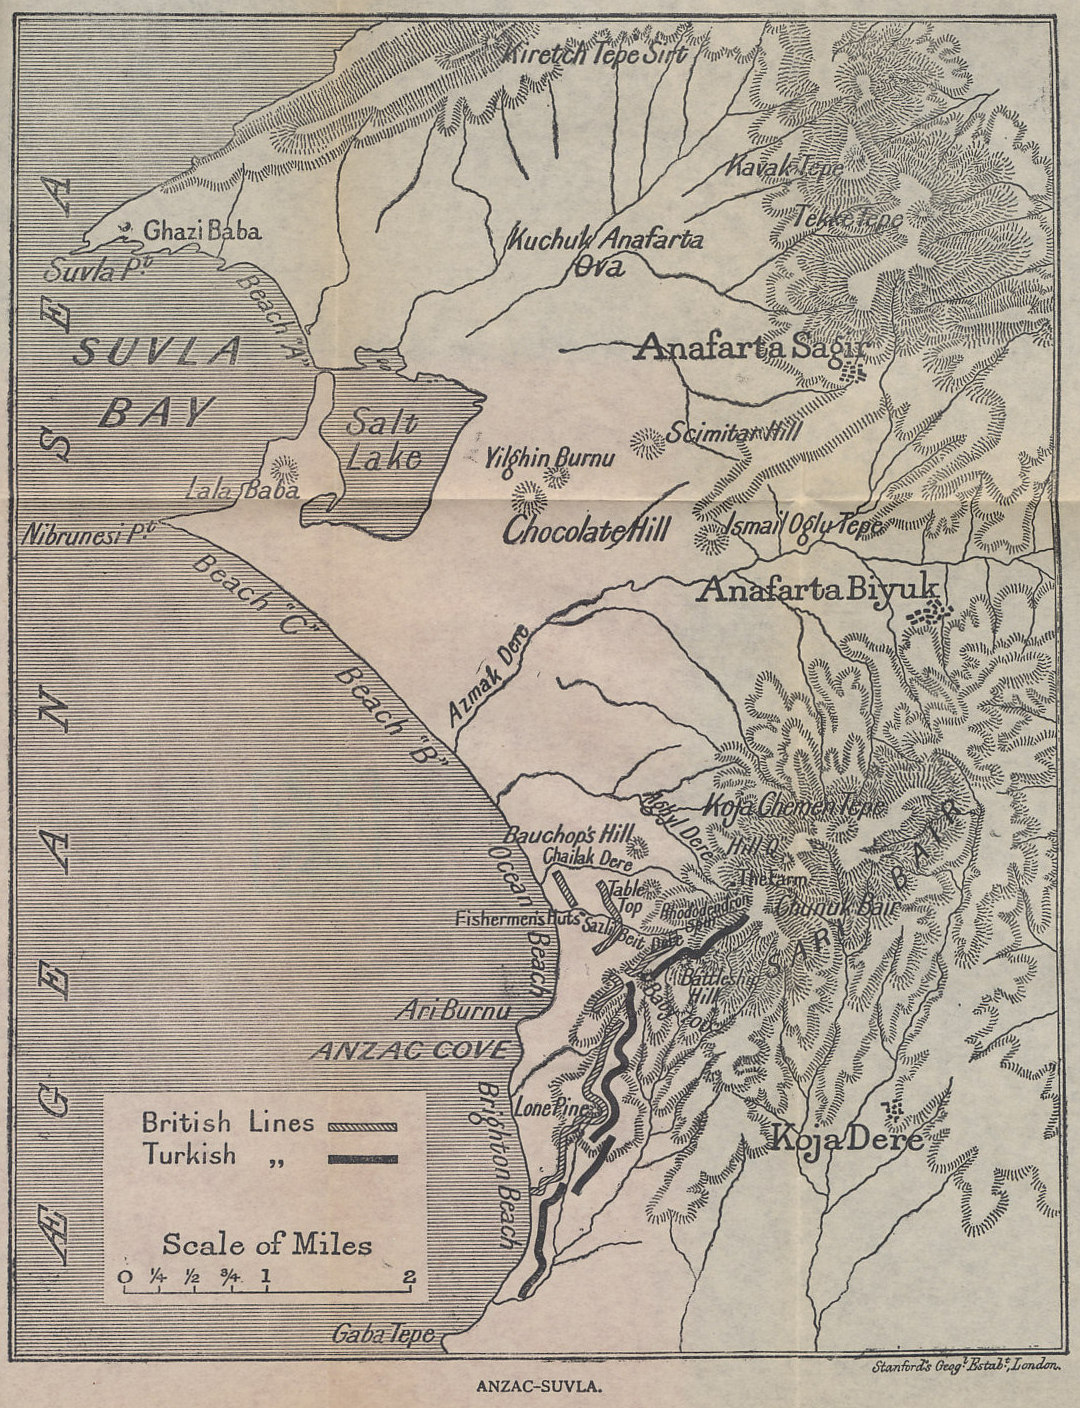 Map of the Gallipoli Peninsula from Suvla Bay to Anzac Cove  from 'Gallipoli' by John Masefield. In landing at Suvla Bay on August 6, 1915, the Allies hoped to open a new sector on Gallipoli that, with a simultaneous advance from Anzac Cove, would break the stalemate that had held since the April 25 invasion. The plan failed. Locations shown include Suvla Bay, the Salt Lake, dry in summer, Ari Burnu or Anzac Cove, named for the Australia and New Zealand Army Corps that held it, Chunuk Bair, where the New Zealanders suffered devastating casualties, and Battleship Hill, deadly to the Australians.